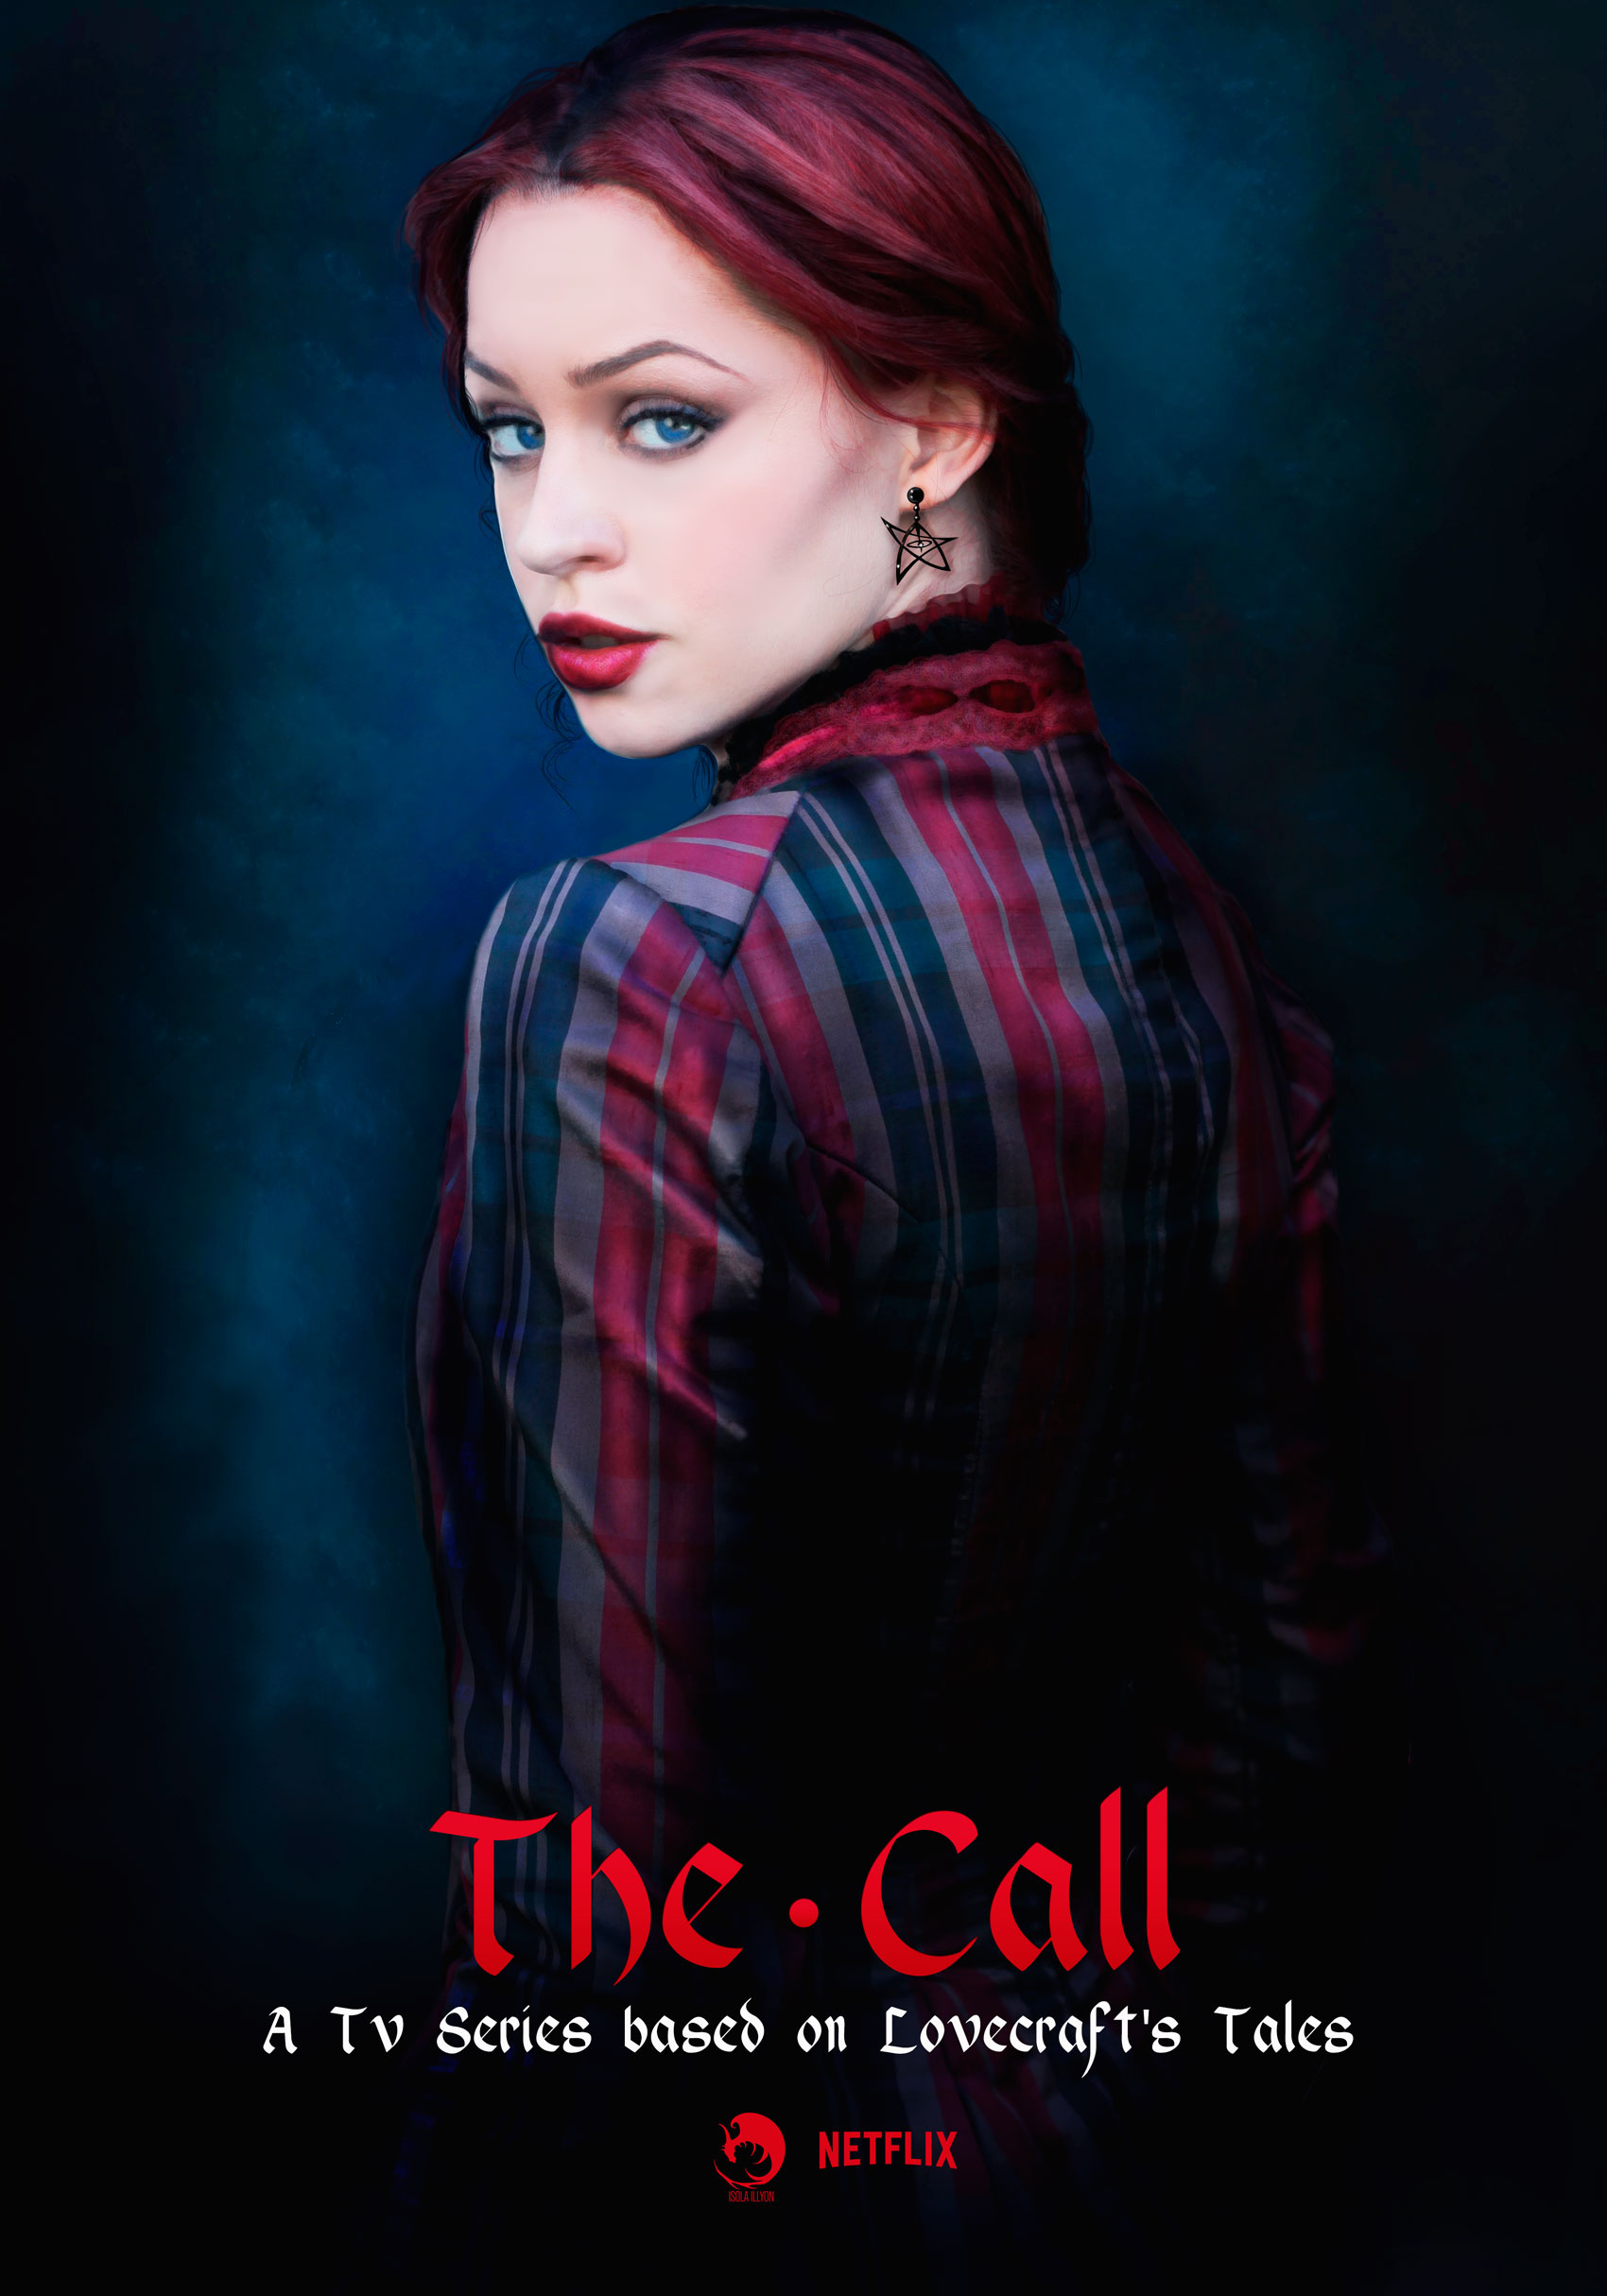 Poster-The-Call-A-Netflix-Tv-Series-based-on-Lovecraft's-tales